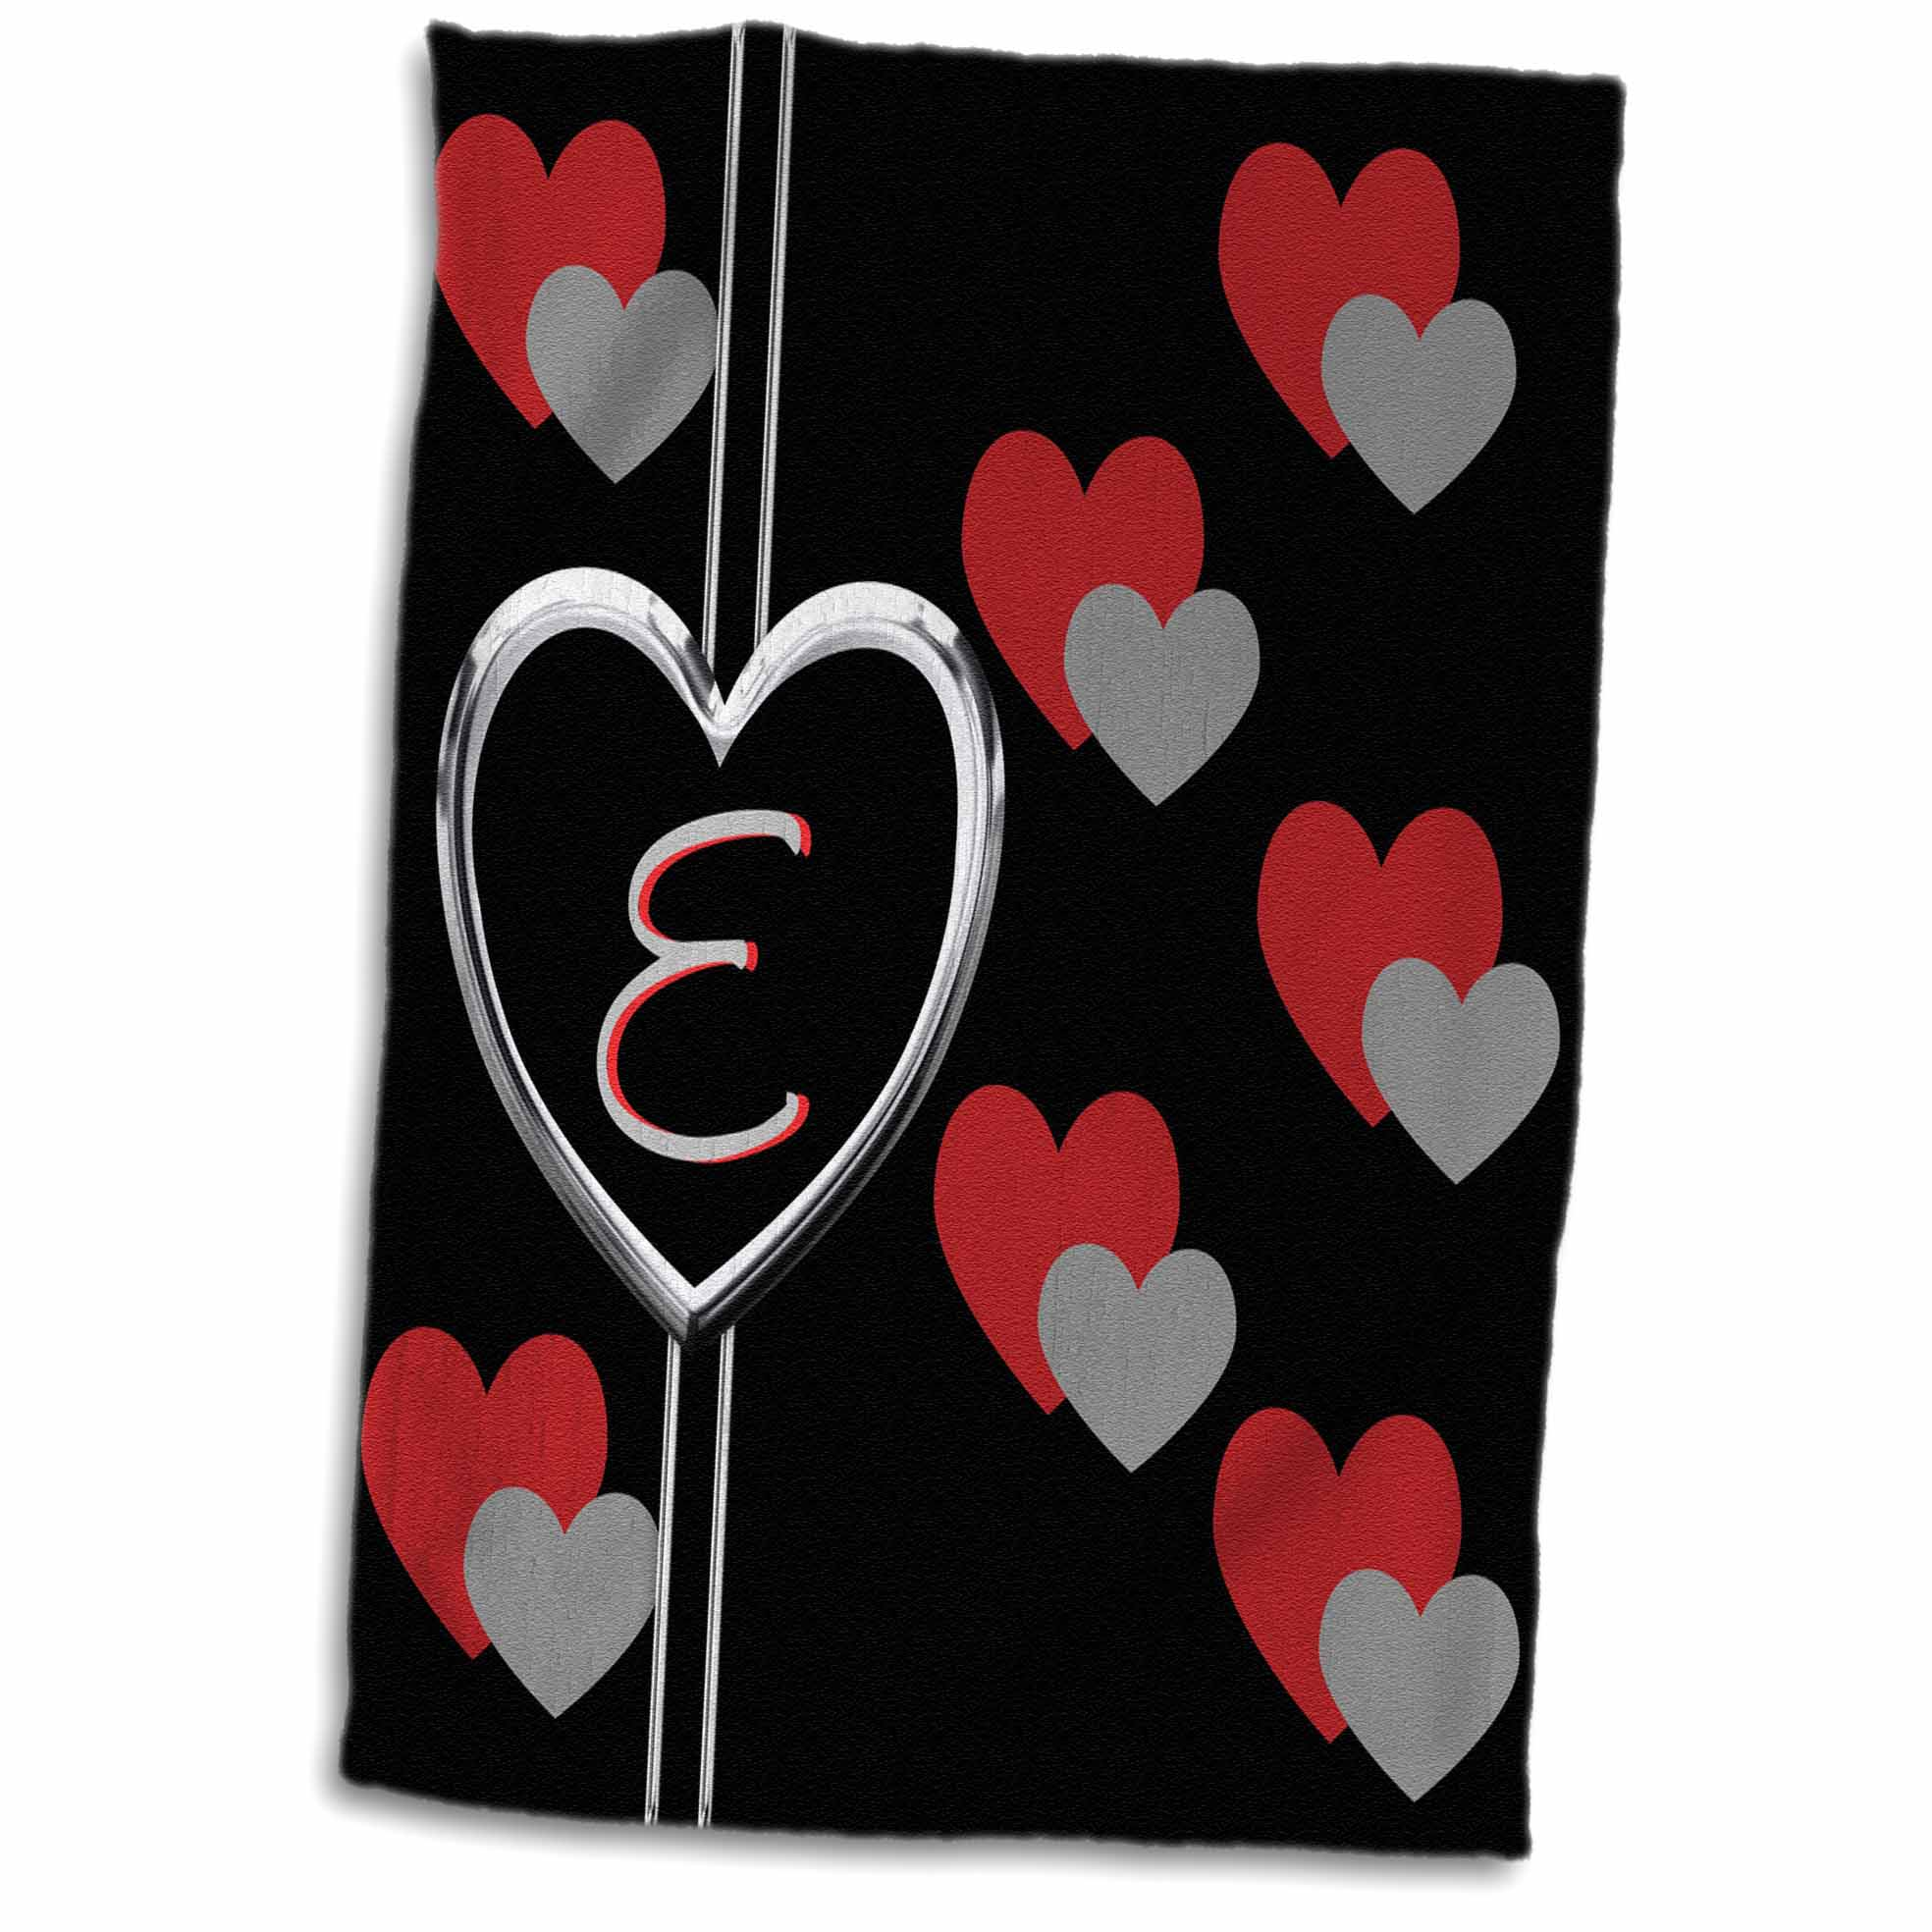 3dRose Modern Geometric Black Red Grey Hearts Pattern Monogram Letter E - Towel, 15 by 22-inch